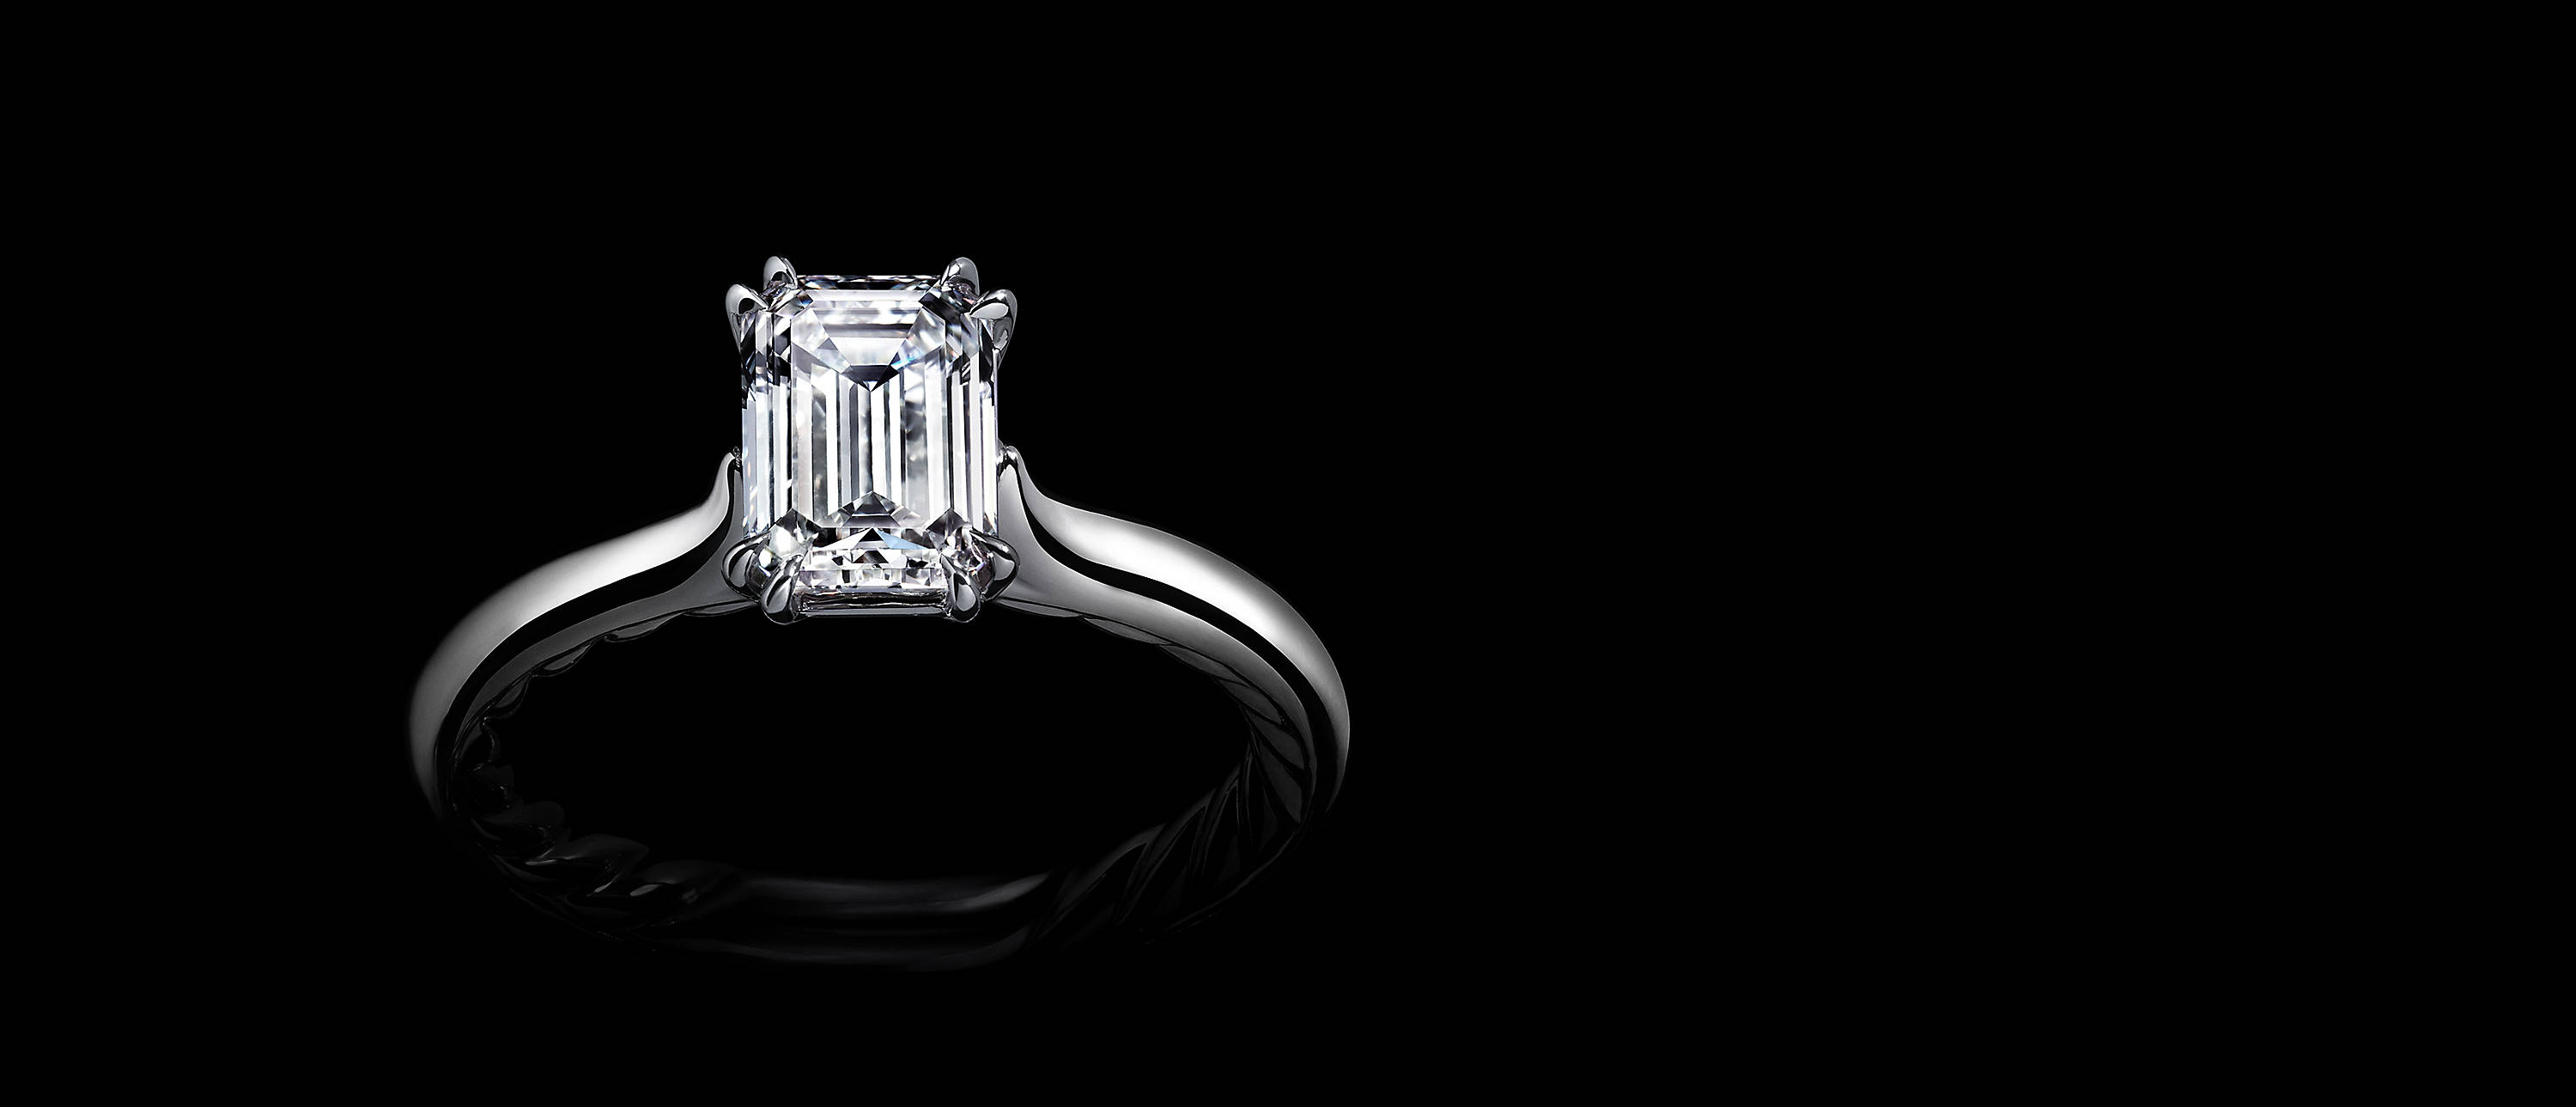 Shot against black, a David Yurman engagement ring in platinum with an emerald-shaped center diamond and Cable on the inside of the shank.